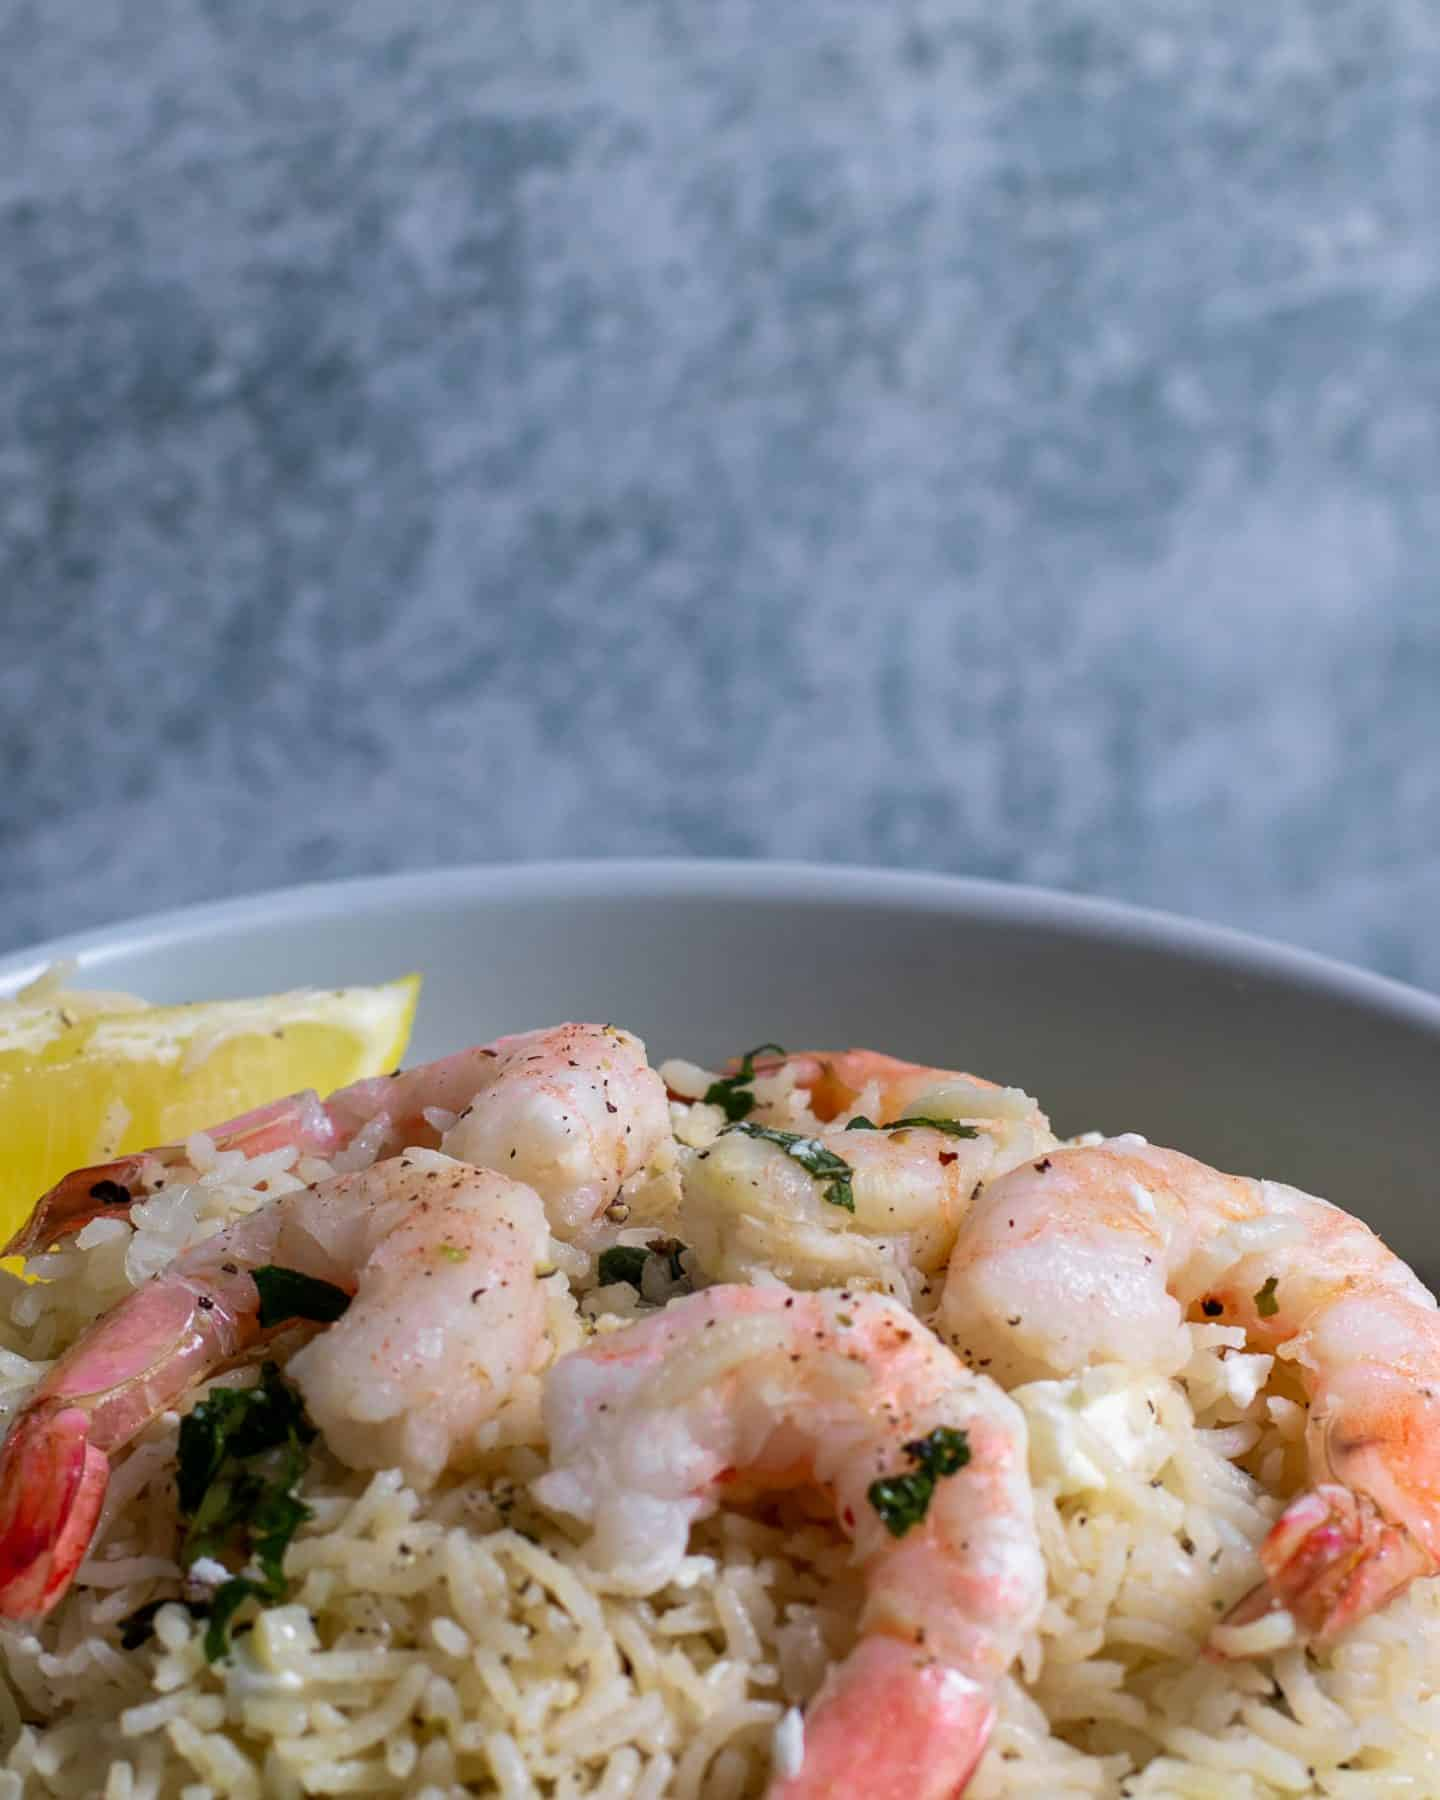 Mint Rice with shrimp and a wedge of lemon.